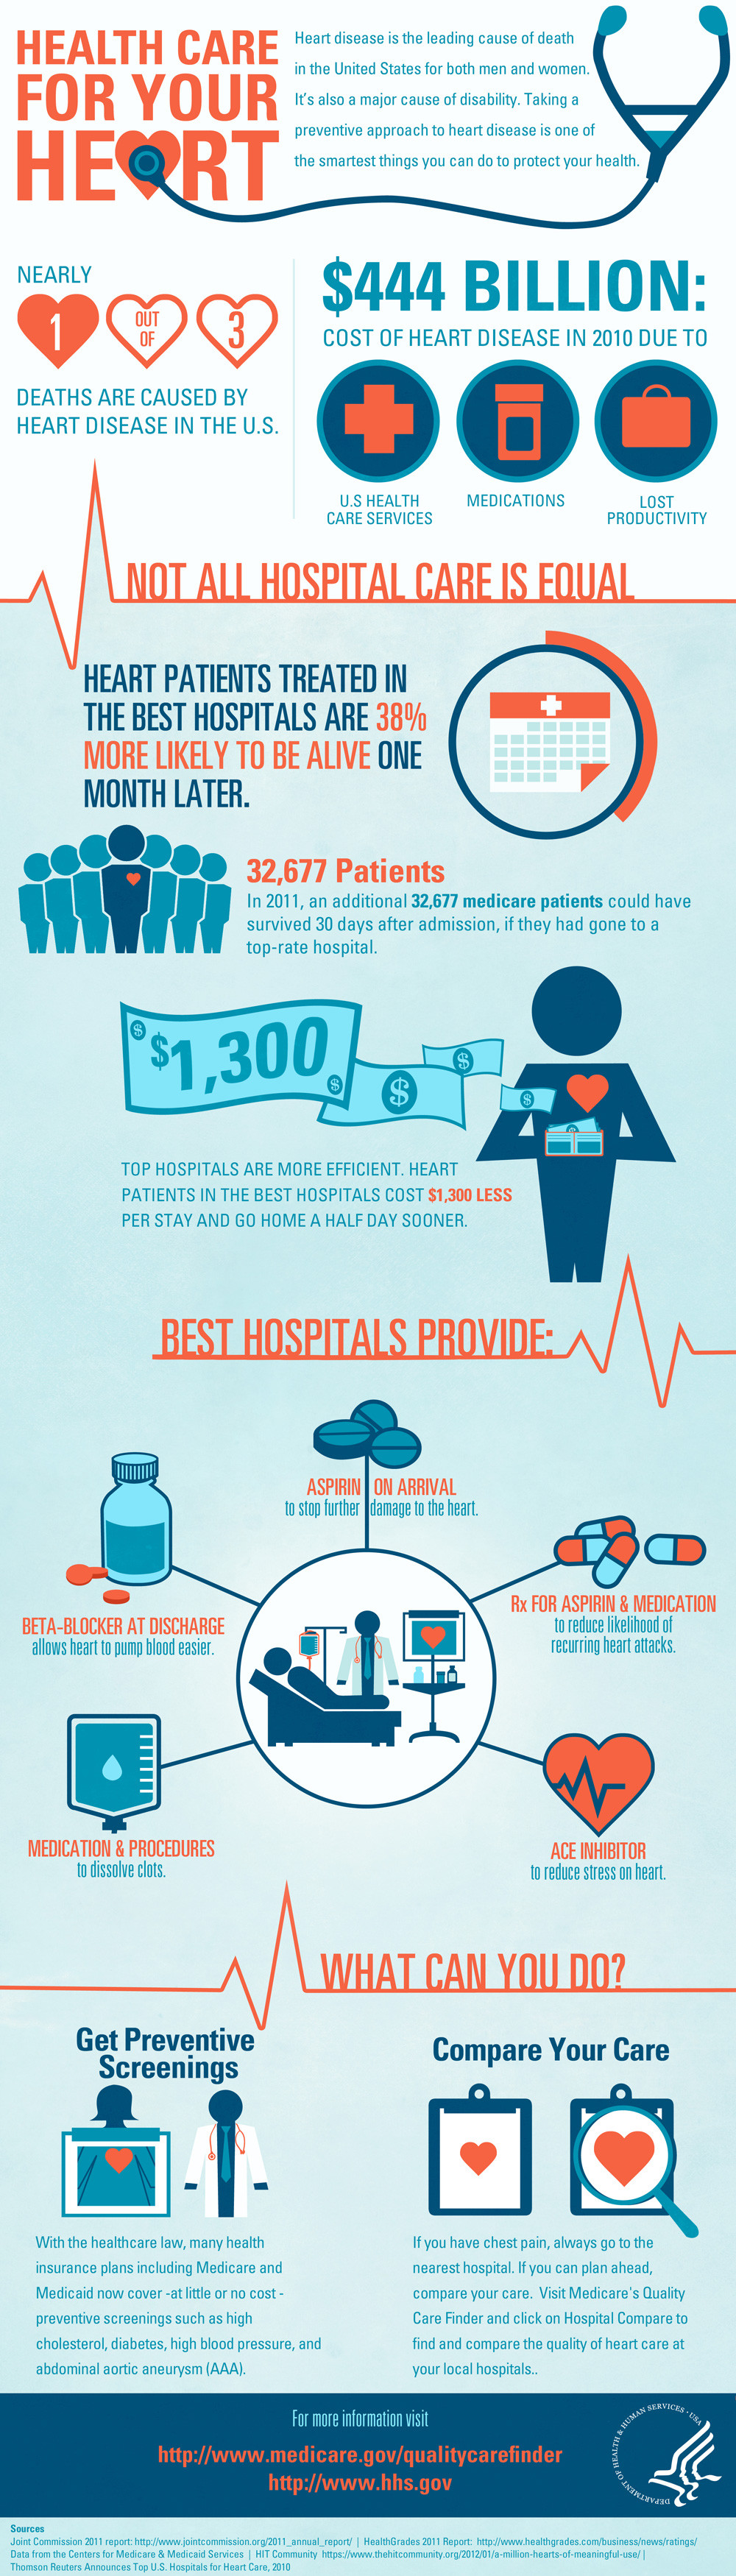 Health Care For Your Heart - Infographic